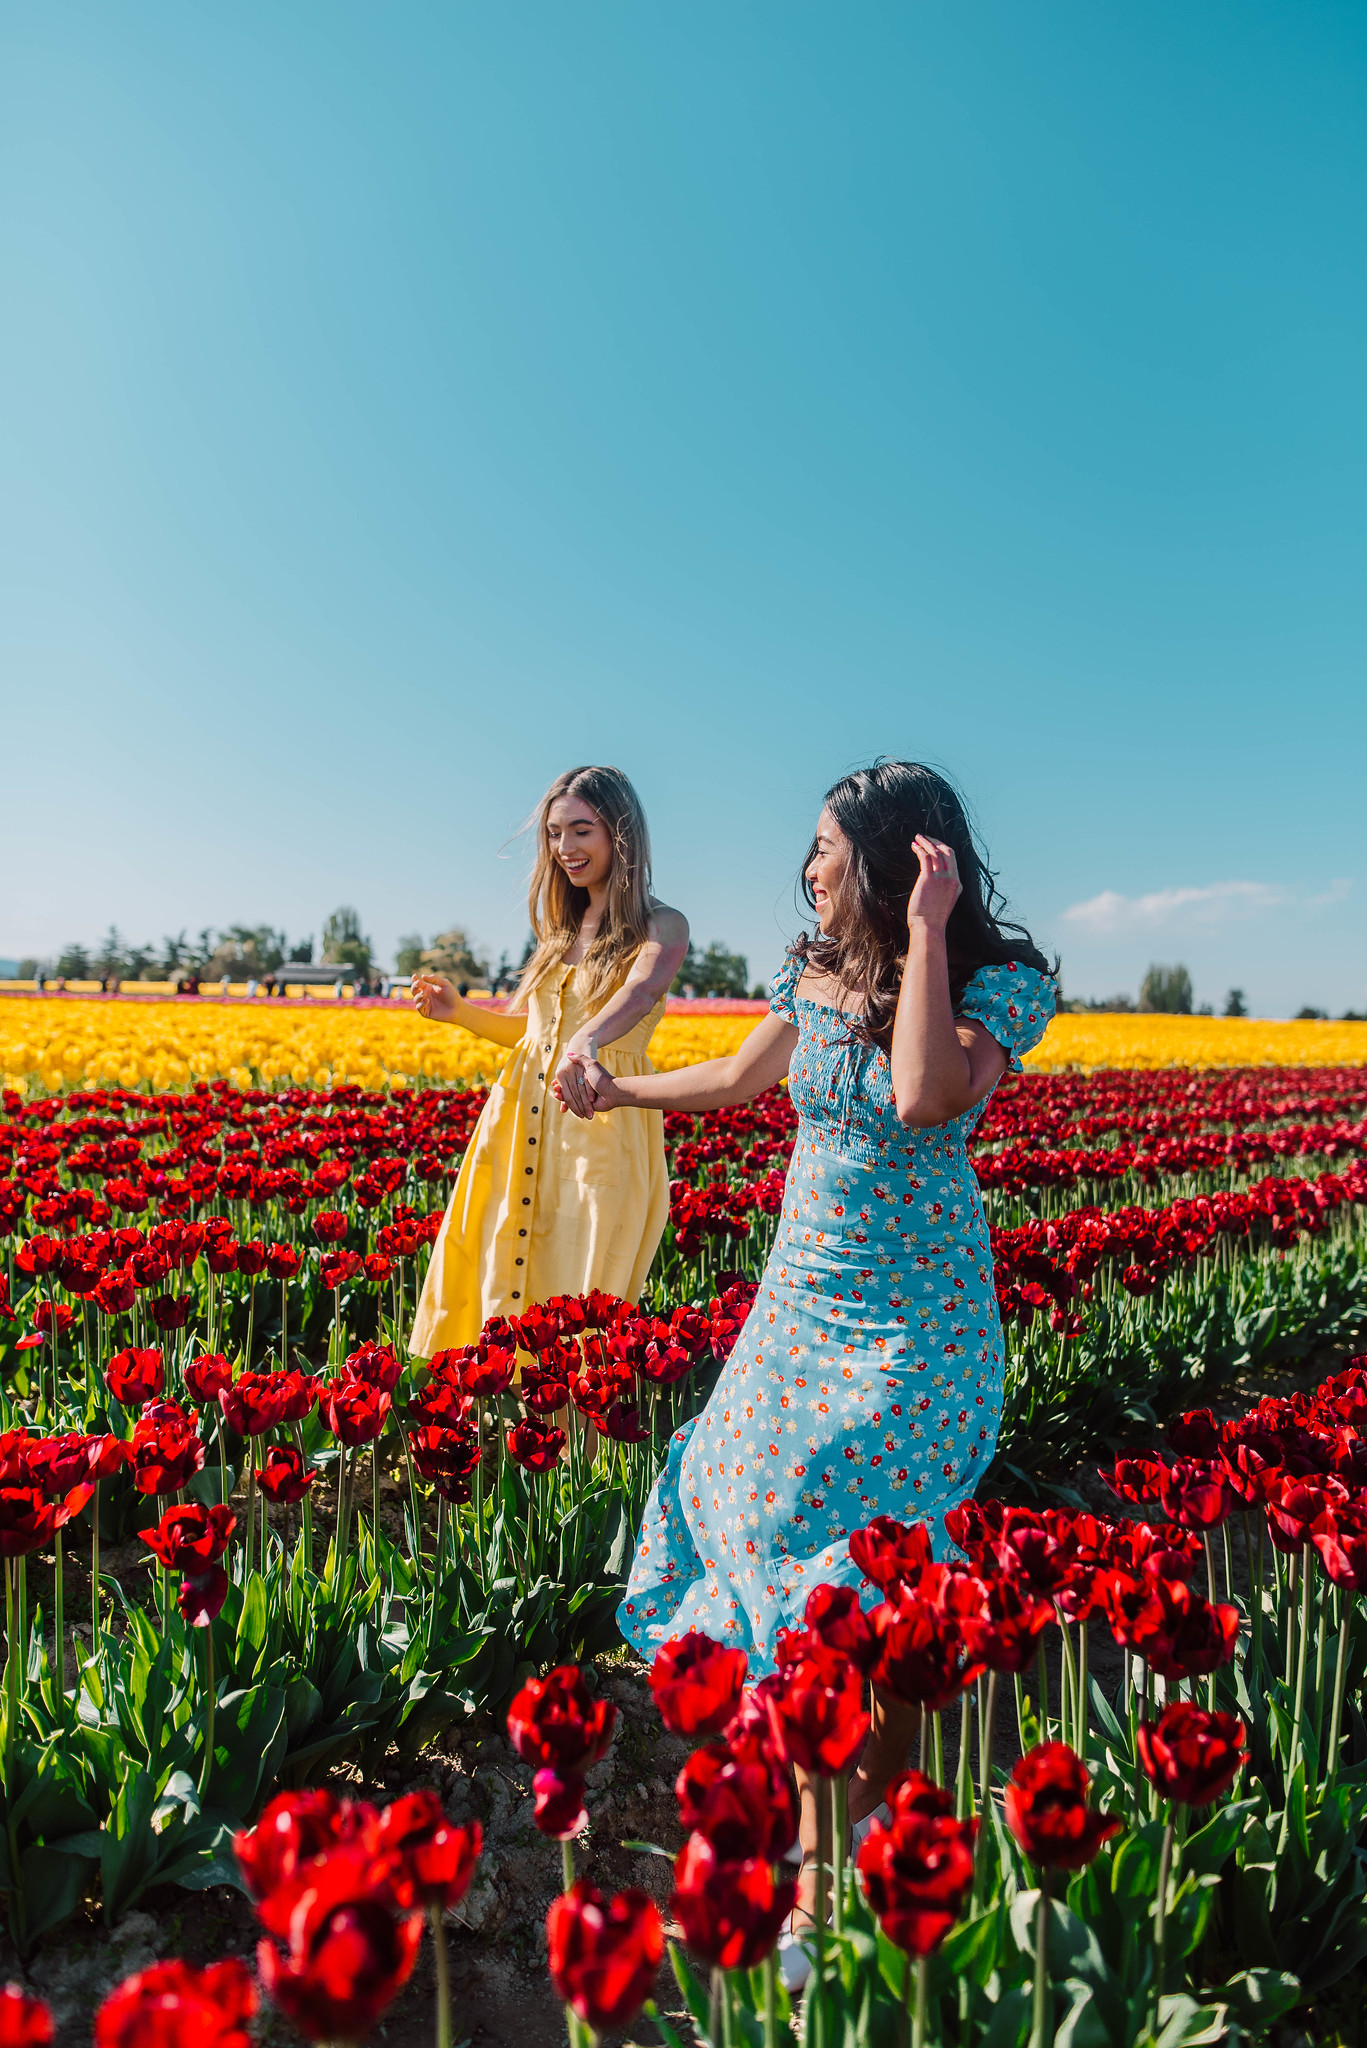 flower field photo shoot ideas